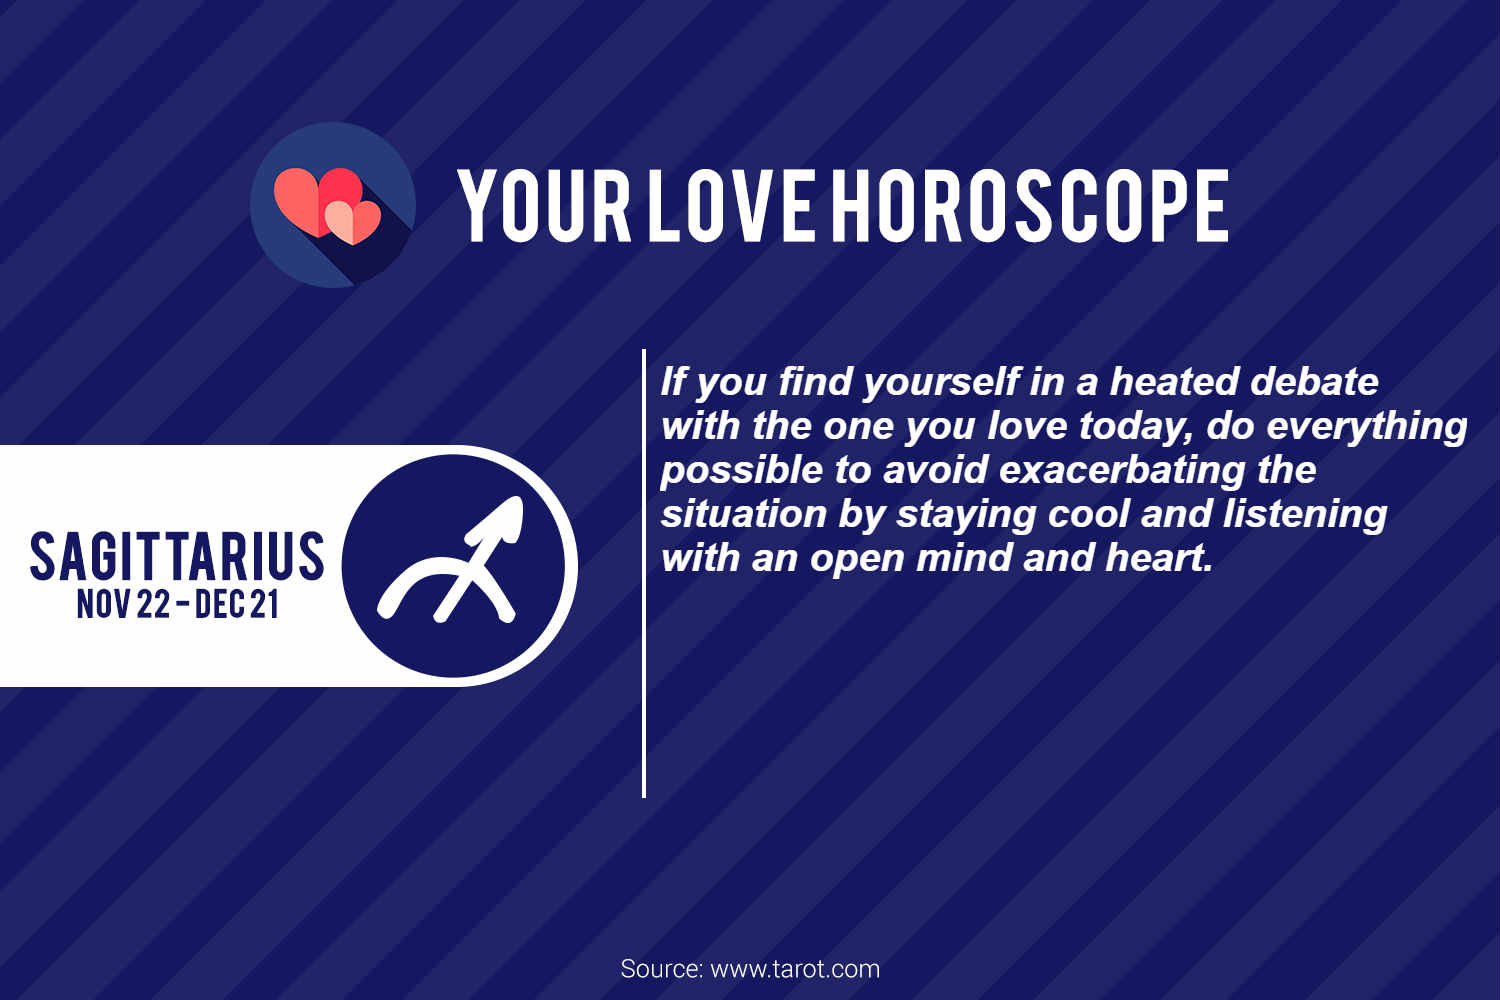 sagittarius-love-horoscope-image-for-inuth